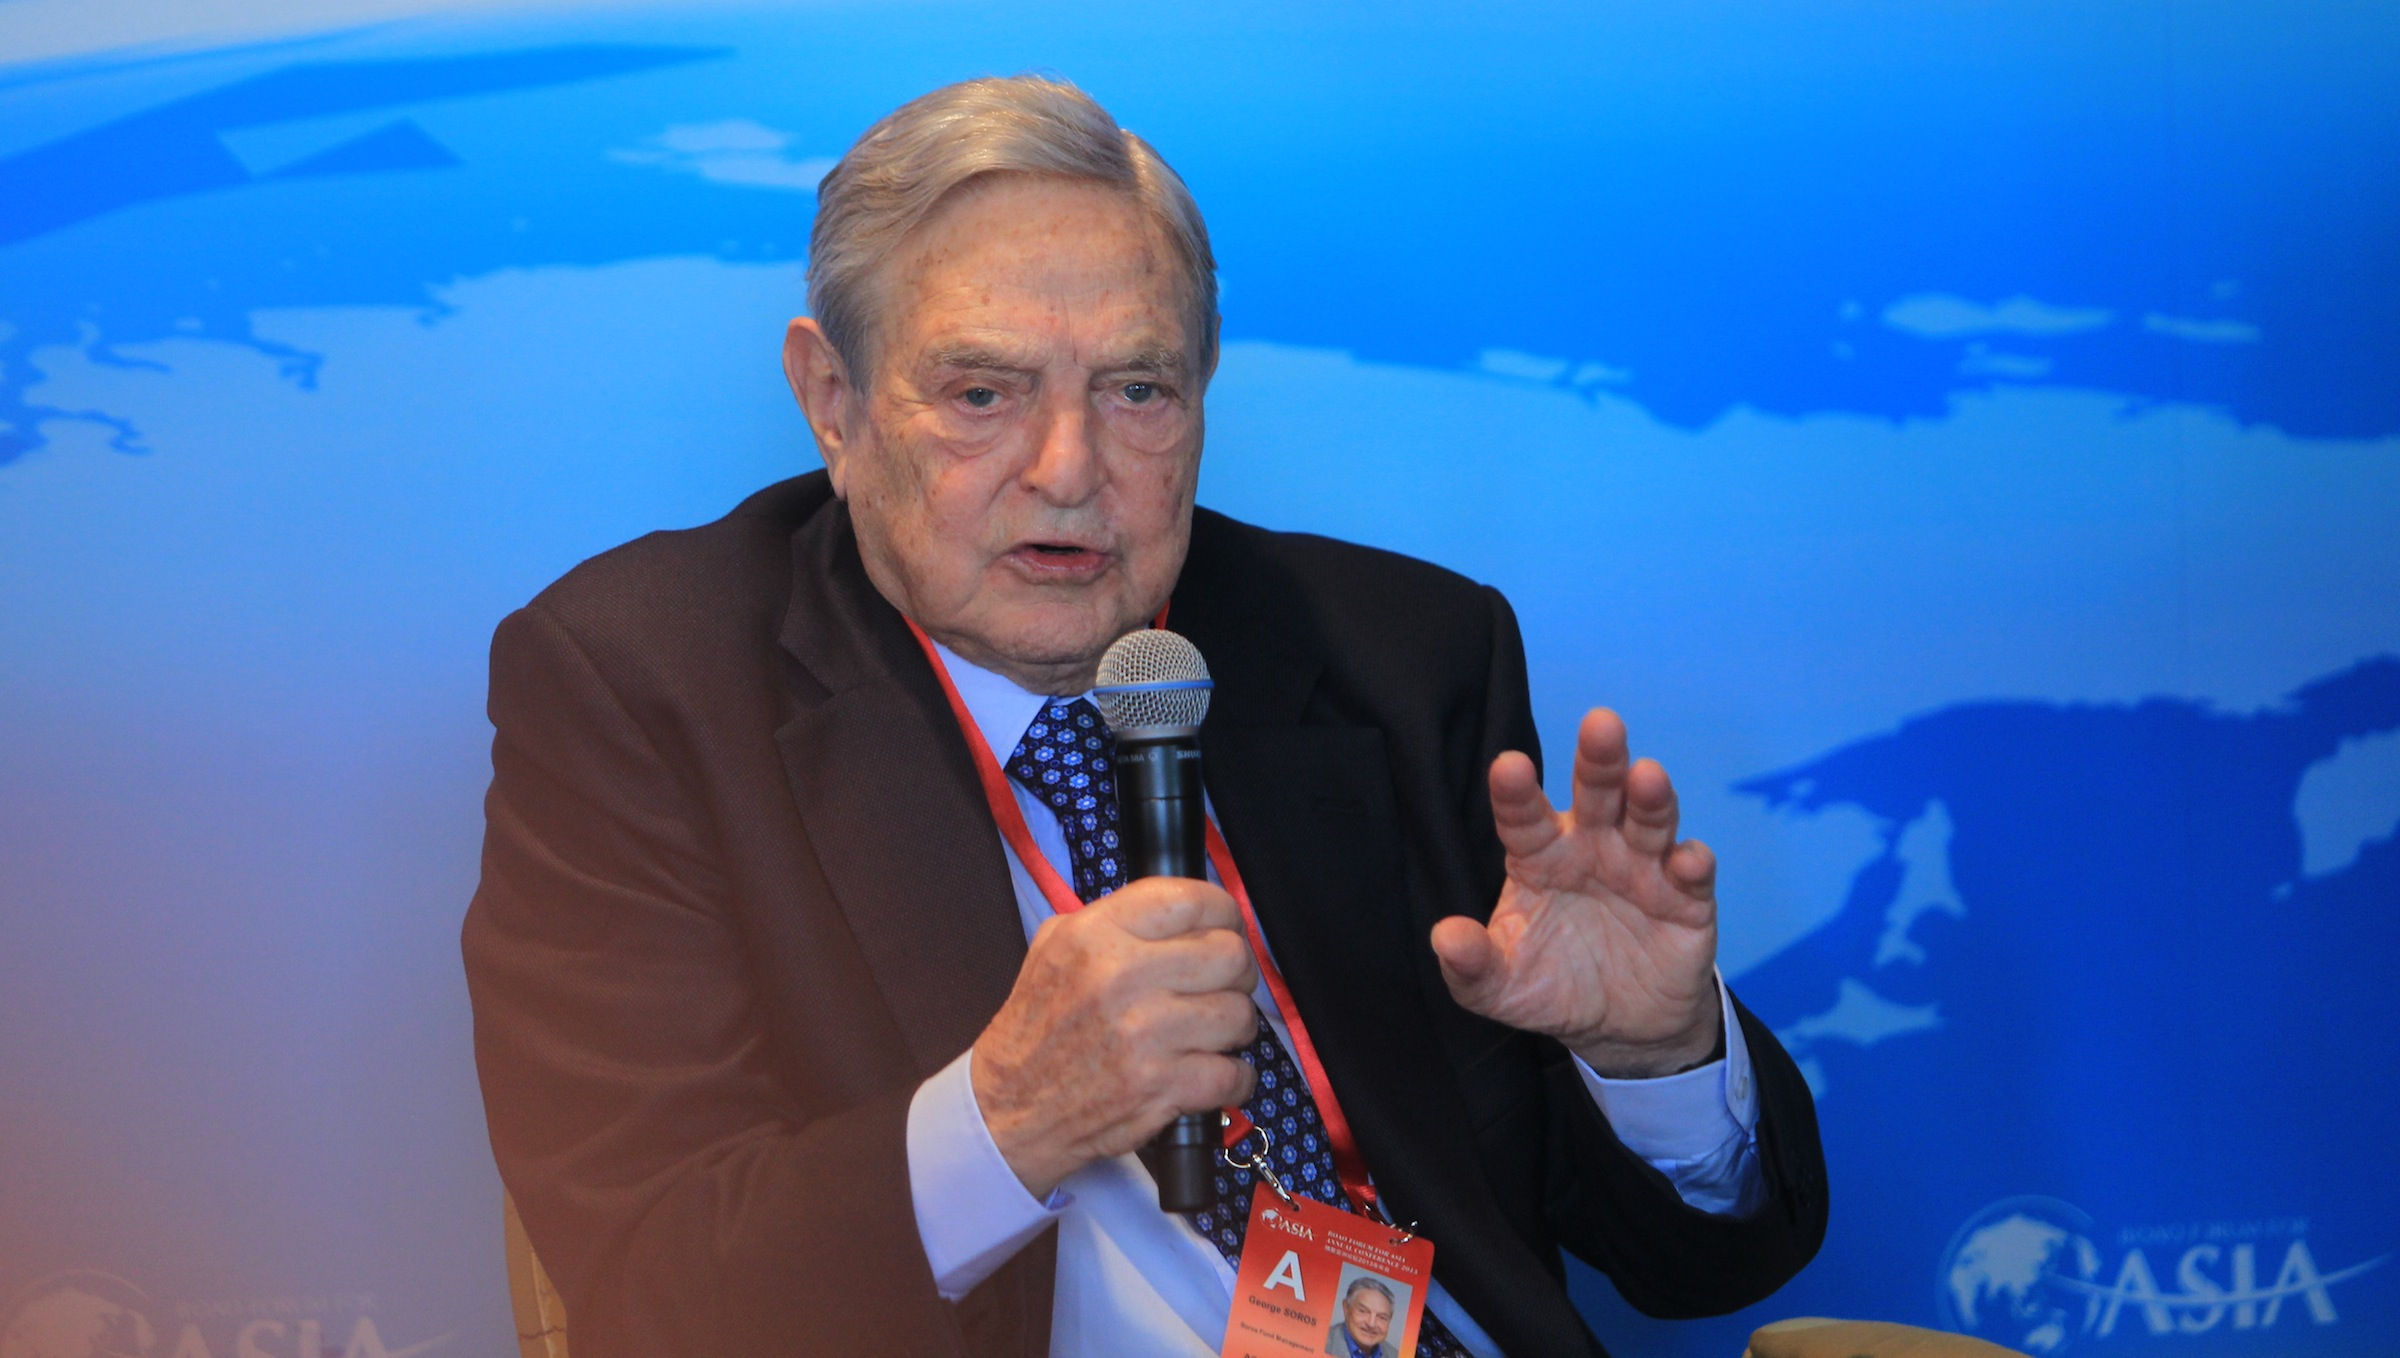 George Soros, chairman of Soros Fund Management and founder of The Open Society Institute, speaks at a sub-forum during the 2013 Boao Forum for Asia in Boao town, Qionghai city, south Chinas Hainan province, 8 April 2013.   The outlook for Chinas economic transformation is hopeful, and its new leadership has been aware of the need to make the transition, said Gorge Soros, the retired chairman of Soros Fund Management and founder of Quantum Fund in a recent interview with Xinhua. I think the initial signs (of the new leaderships financial policies) are very encouraging, he said, adding he is optimistic and China has been at the forefront of economic planning. Chinas 12th Five-Year Plan (2011- 2015) made a turning point in the countrys growth model, steering the economy away from export and investment-led growth to boost domestic consumption. It is going to be a very difficult transformation, Soros said, adding the growth of household consumption taking one third of Chinas economy cannot make up for the slower growth in exports and investments, which account for two thirds of the economy. Therefore, the overall growth rate will have to be significantly slower than it has been up to now. That is a very important point. He said the more than 10 percent rapid economic growth is unlikely to recur in the more mature phase that China is entering today. Soros said the existing model has produced positive results, and Chinese government has quite substantially accumulated reserves, such as the foreign reserve, that give them the need to correct shortcomings. On the whole, I think the outlook (for Chinas economic transformation) is hopeful, he said.